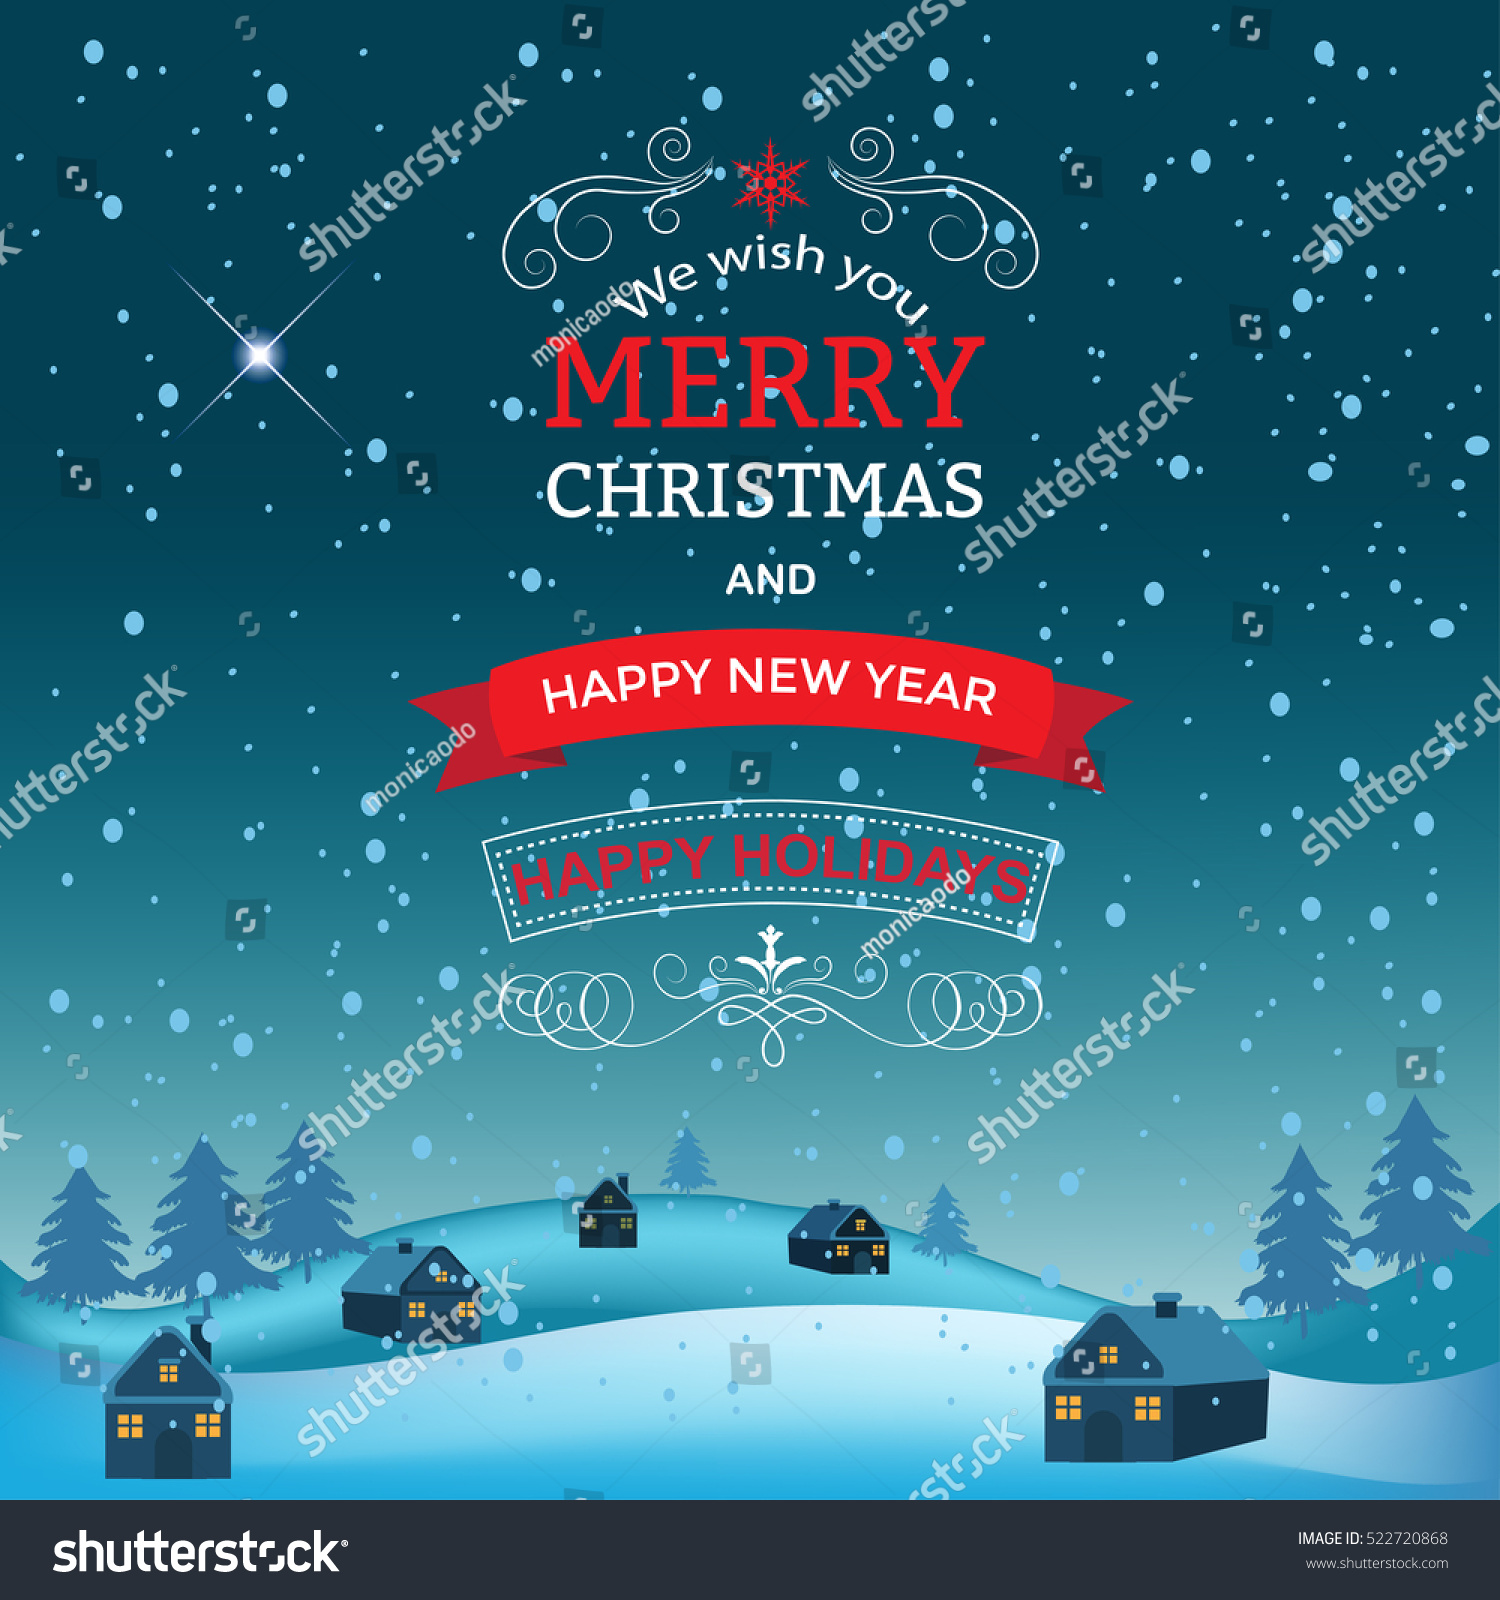 New Year Christmas Greetings Design Winter Stock Vector Hd Royalty